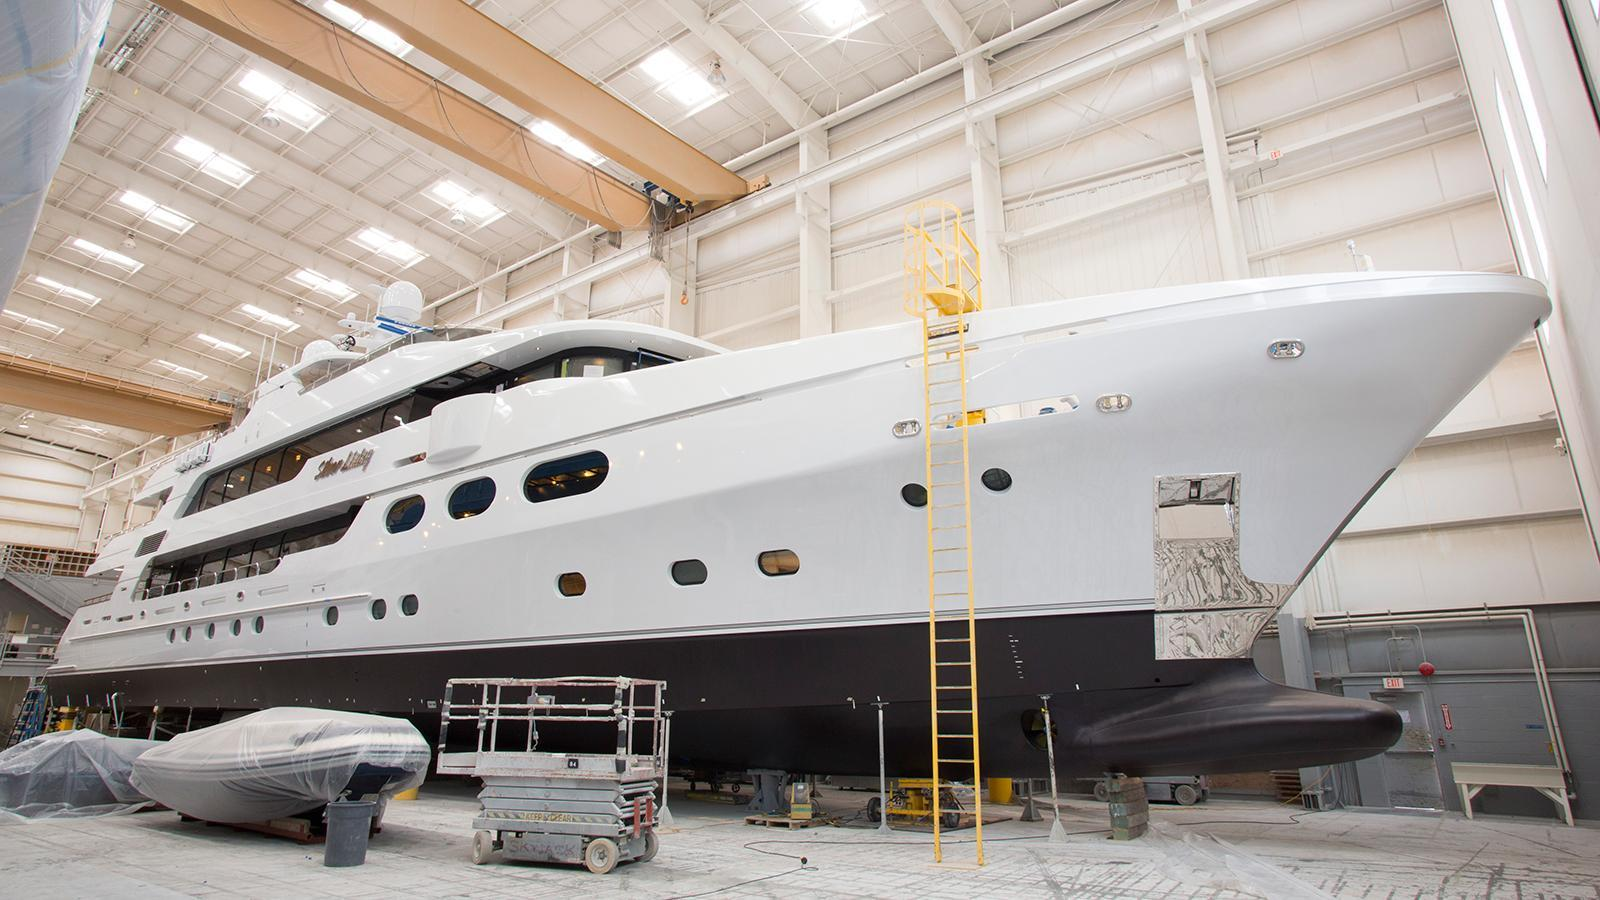 silver lining motoryacht christensen 2017 50m under construction